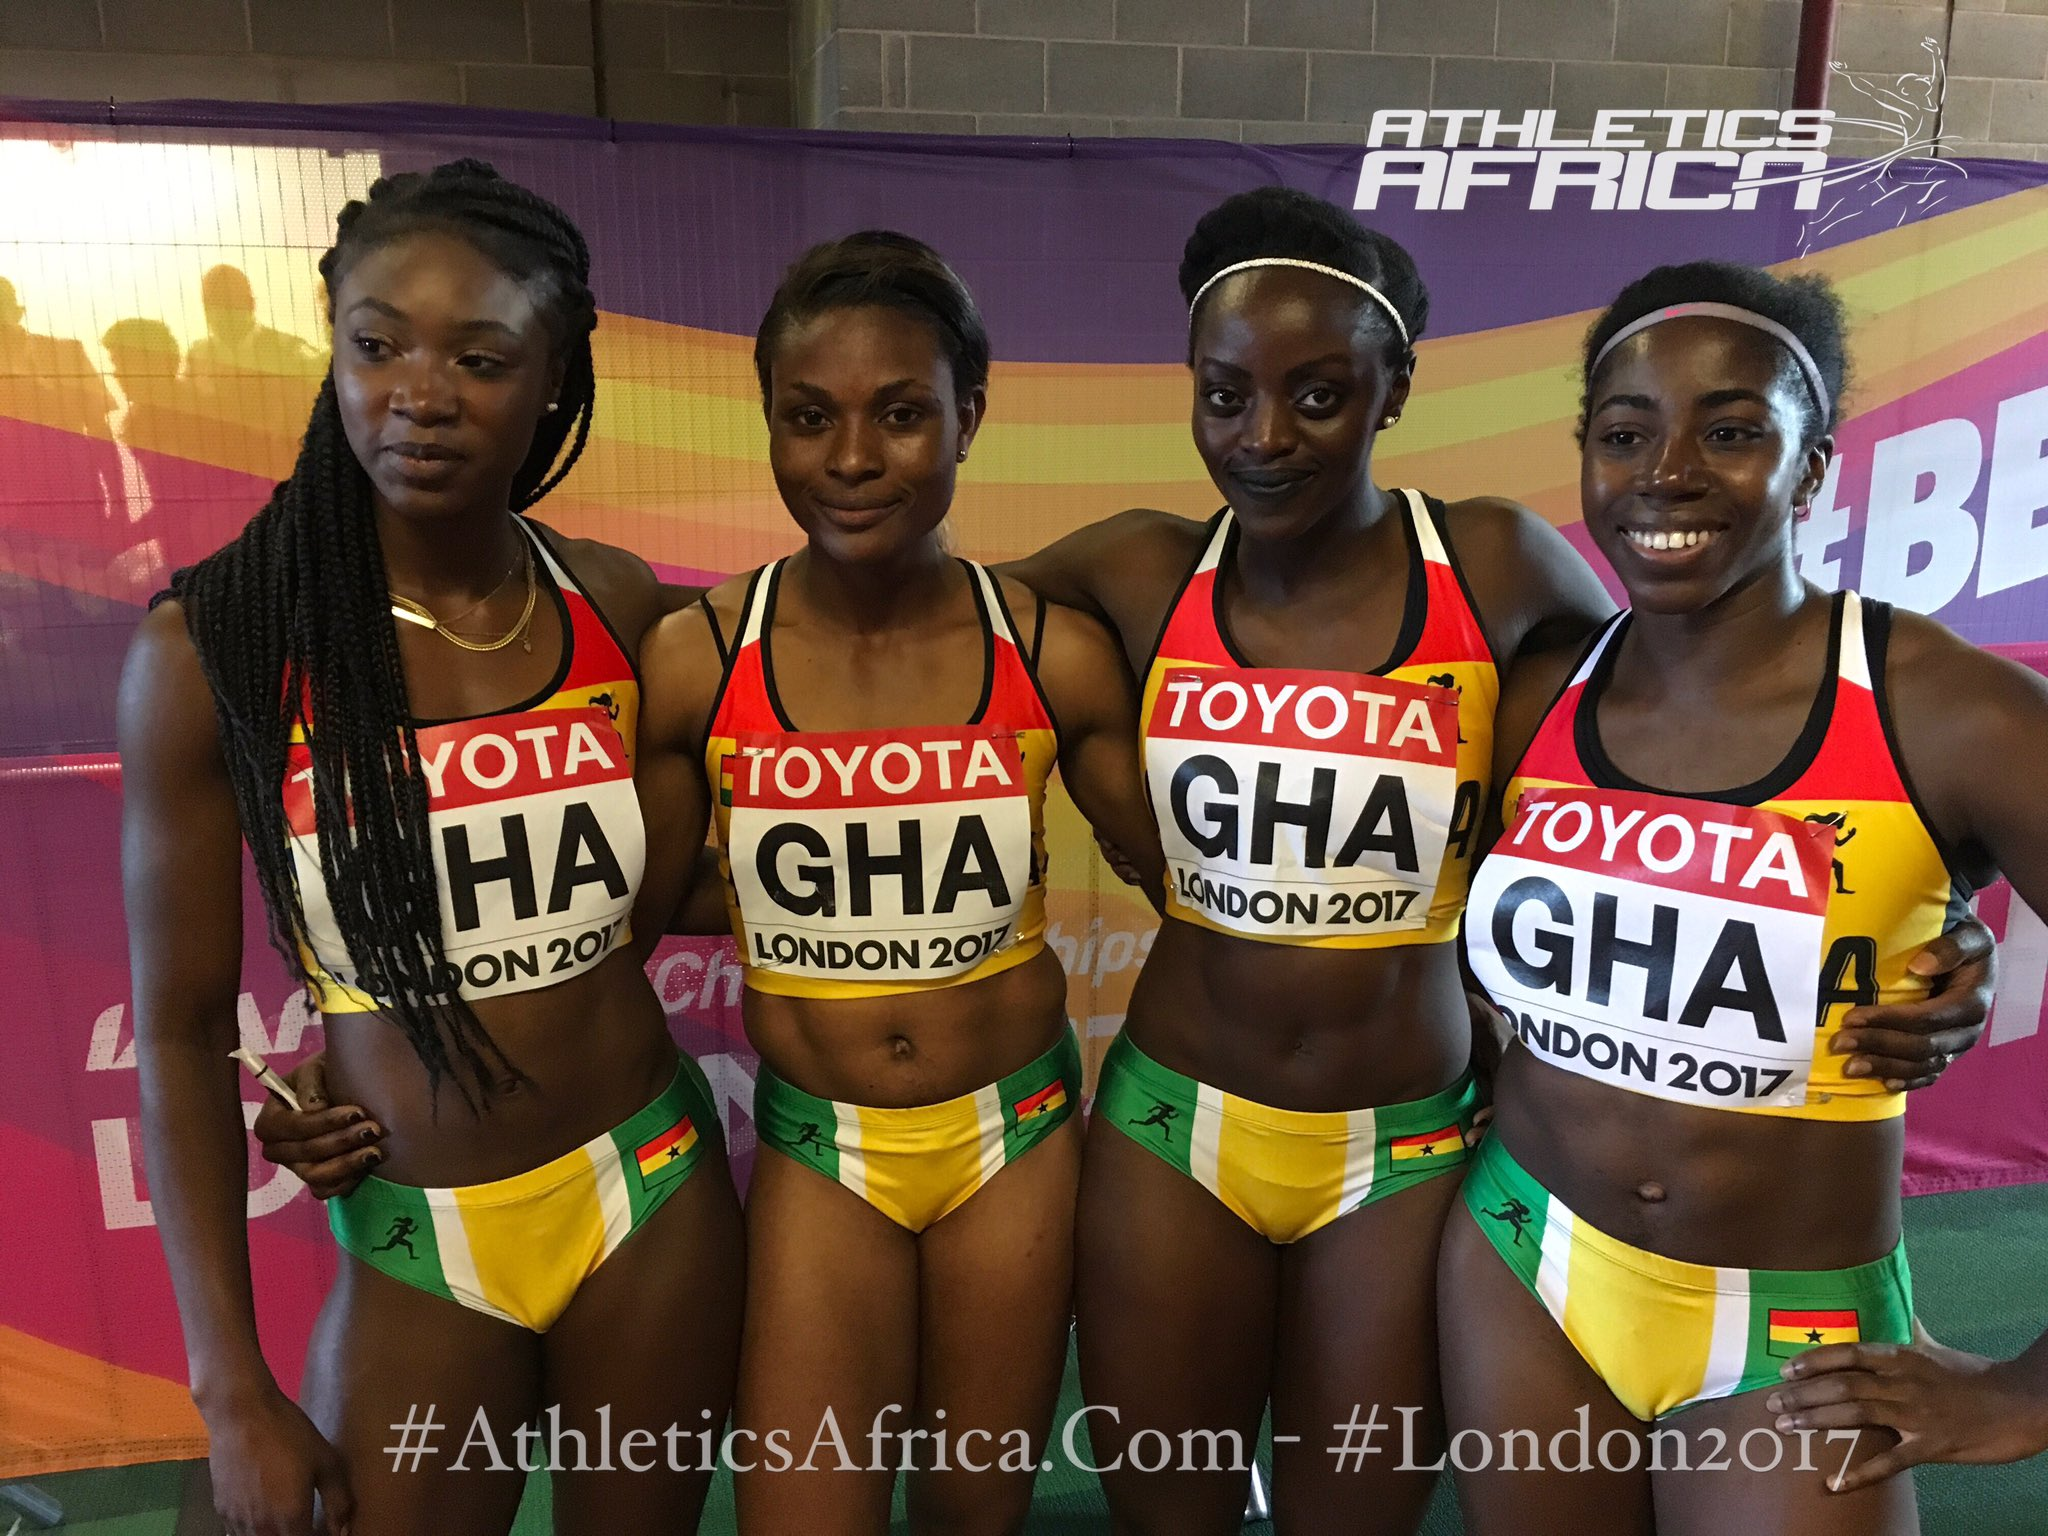 We just fnished a very interesting interview with the #Ghana's 🇬🇭women's 4x100m team.  😒the problem in #Africa athletics is continent wide. https://t.co/TN5shBWsEn